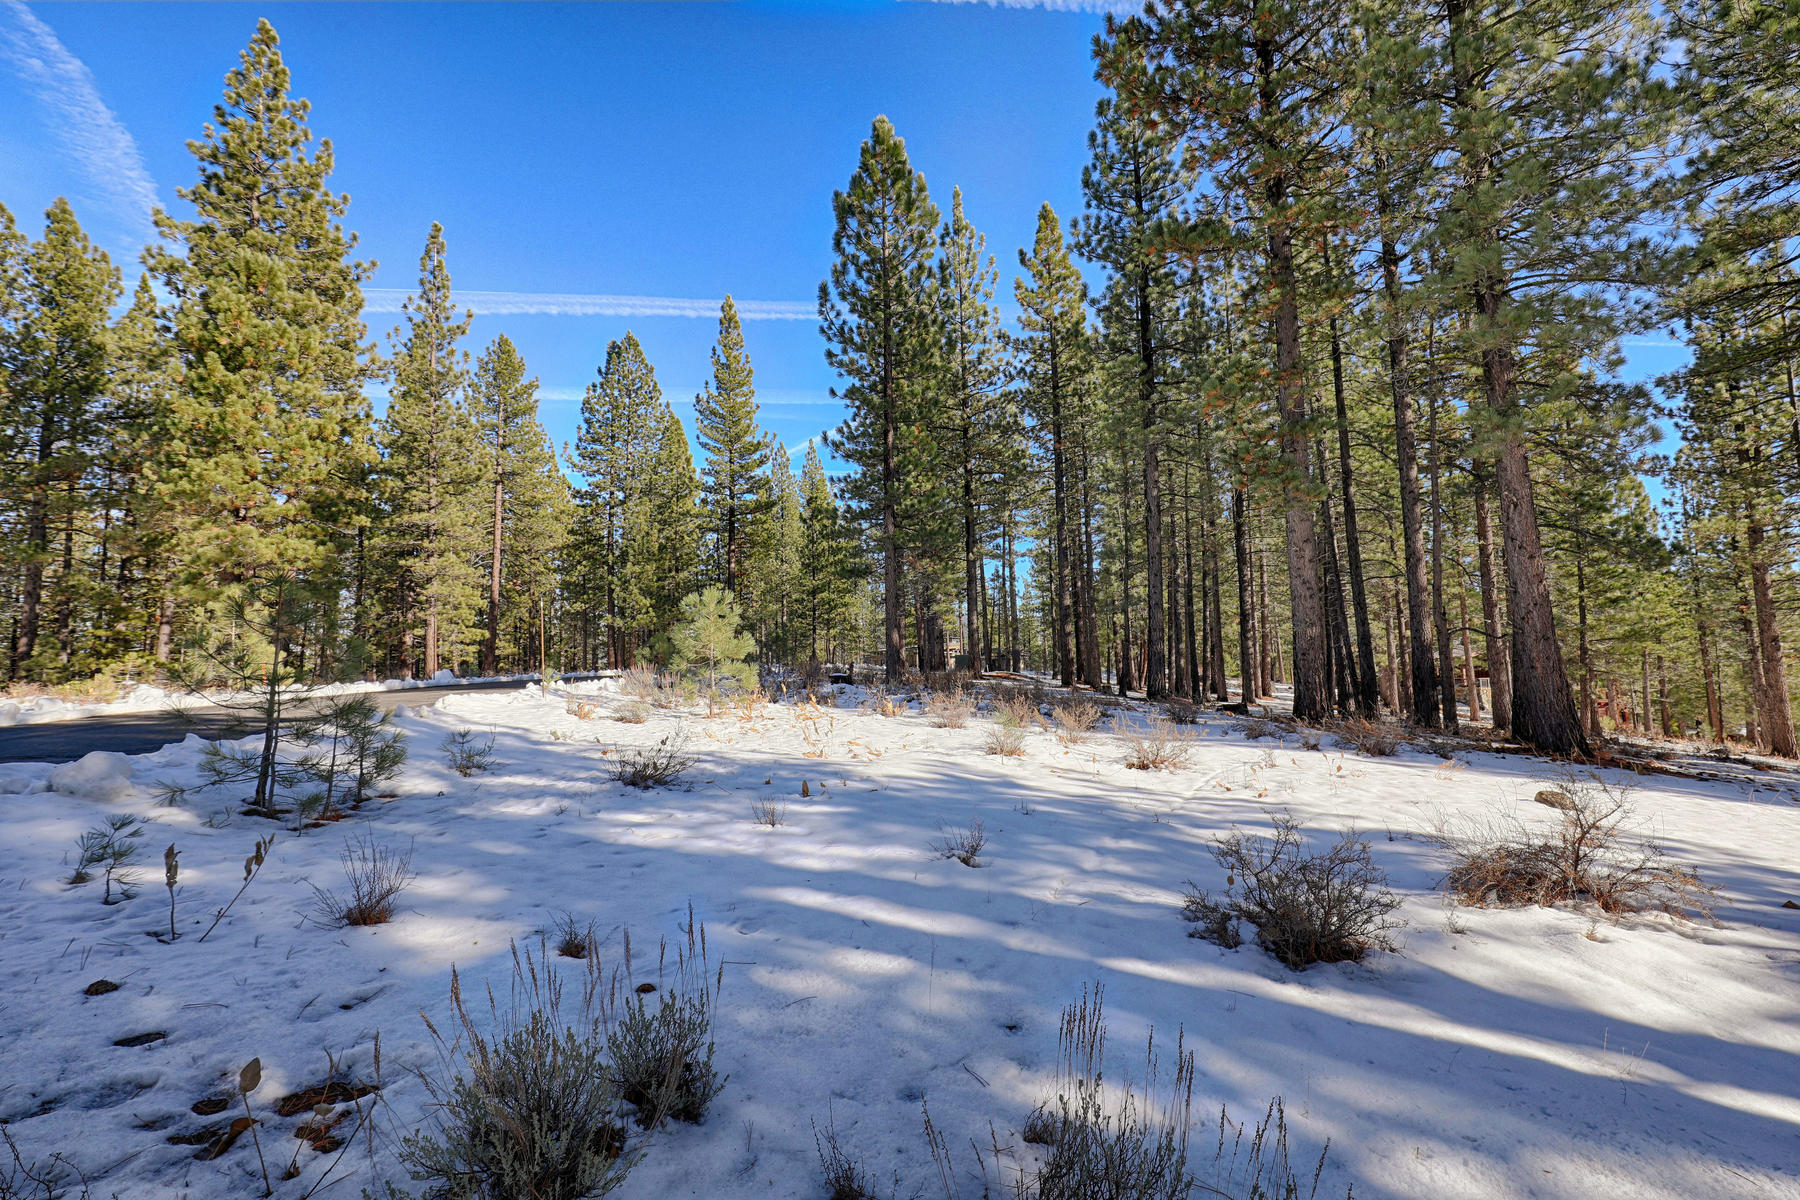 Terreno por un Venta en 250 Laura Knight, Truckee, California 96161 250 Laura Knight Truckee, California 96161 Estados Unidos